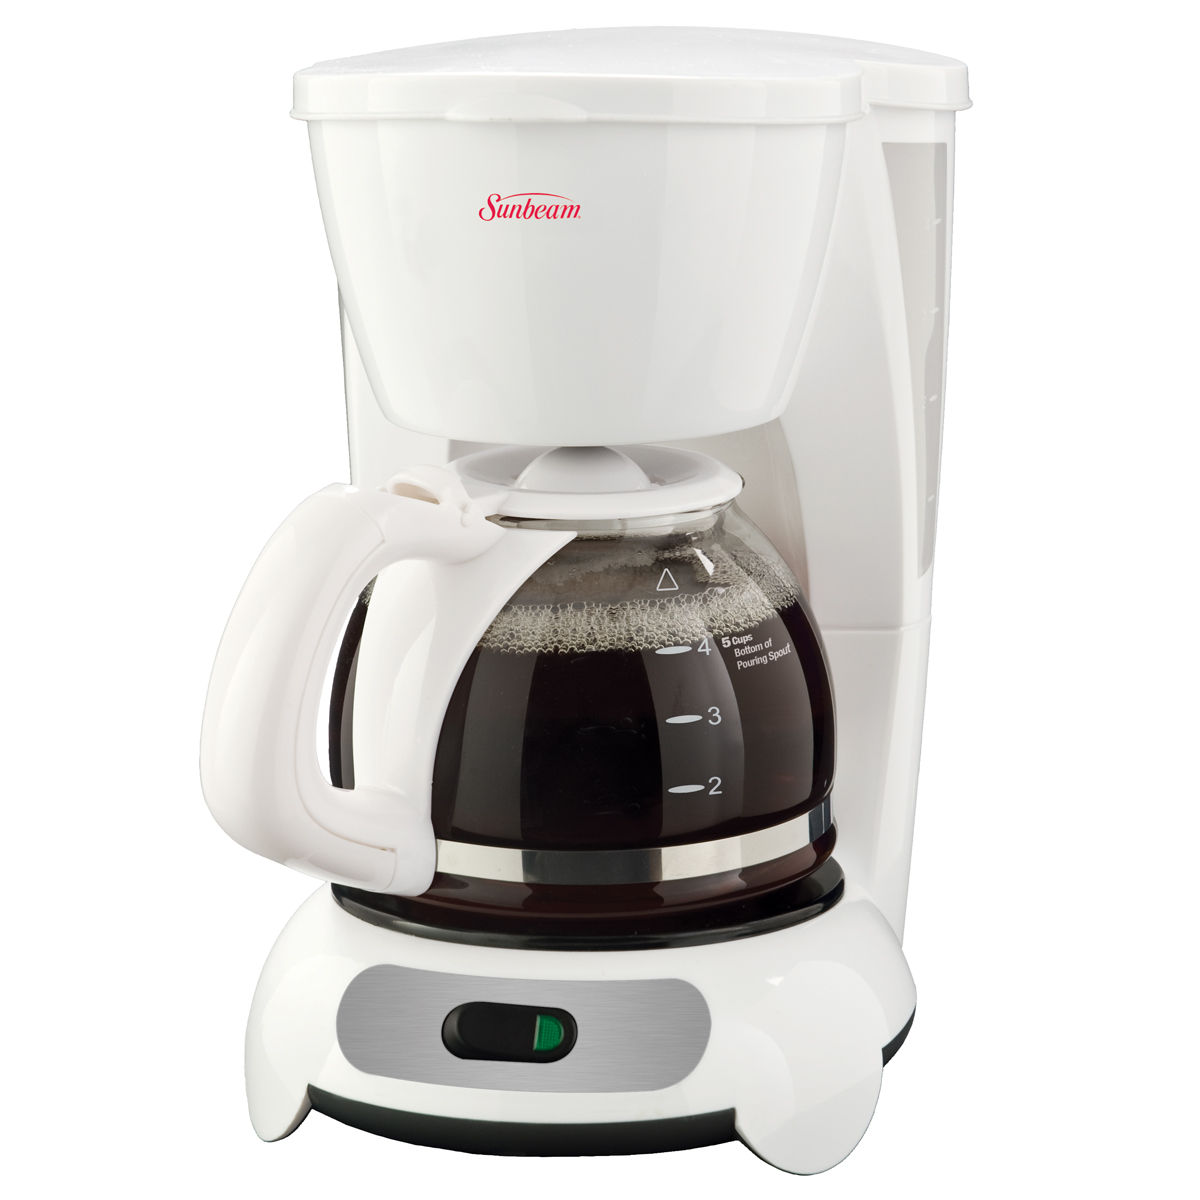 sunbeam 5 cup switch coffeemaker white bvsbtf6 033 sunbeam canada. Black Bedroom Furniture Sets. Home Design Ideas